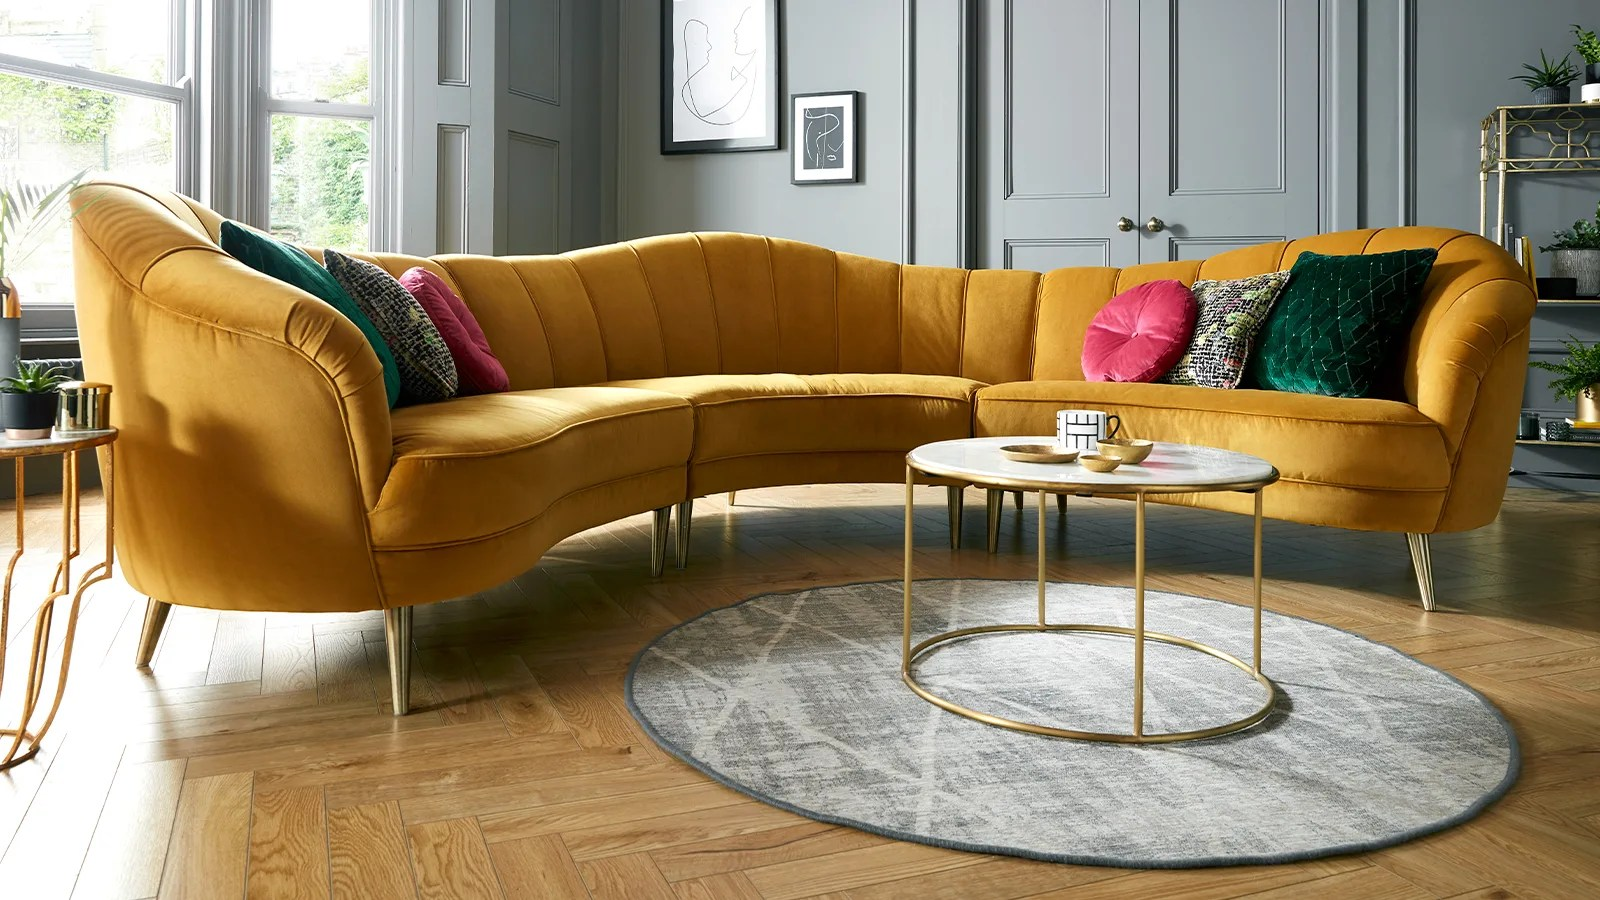 Sofology Yellow Sofa New In Sofology